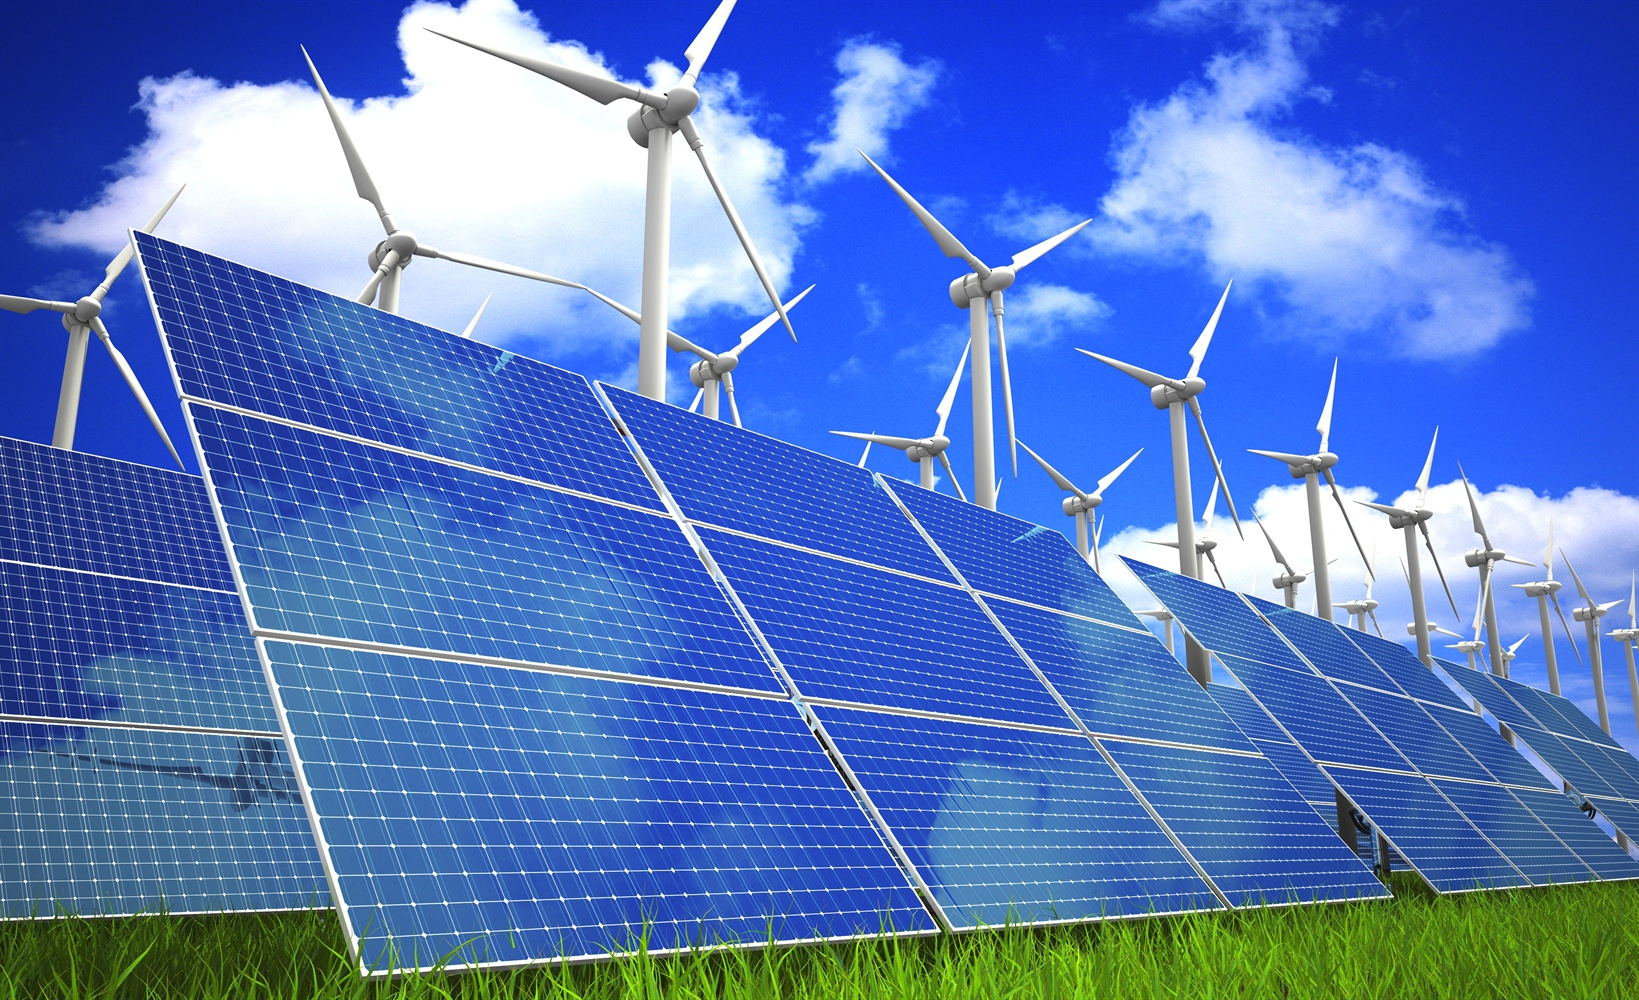 Affordable Energy News for July 10, 2017